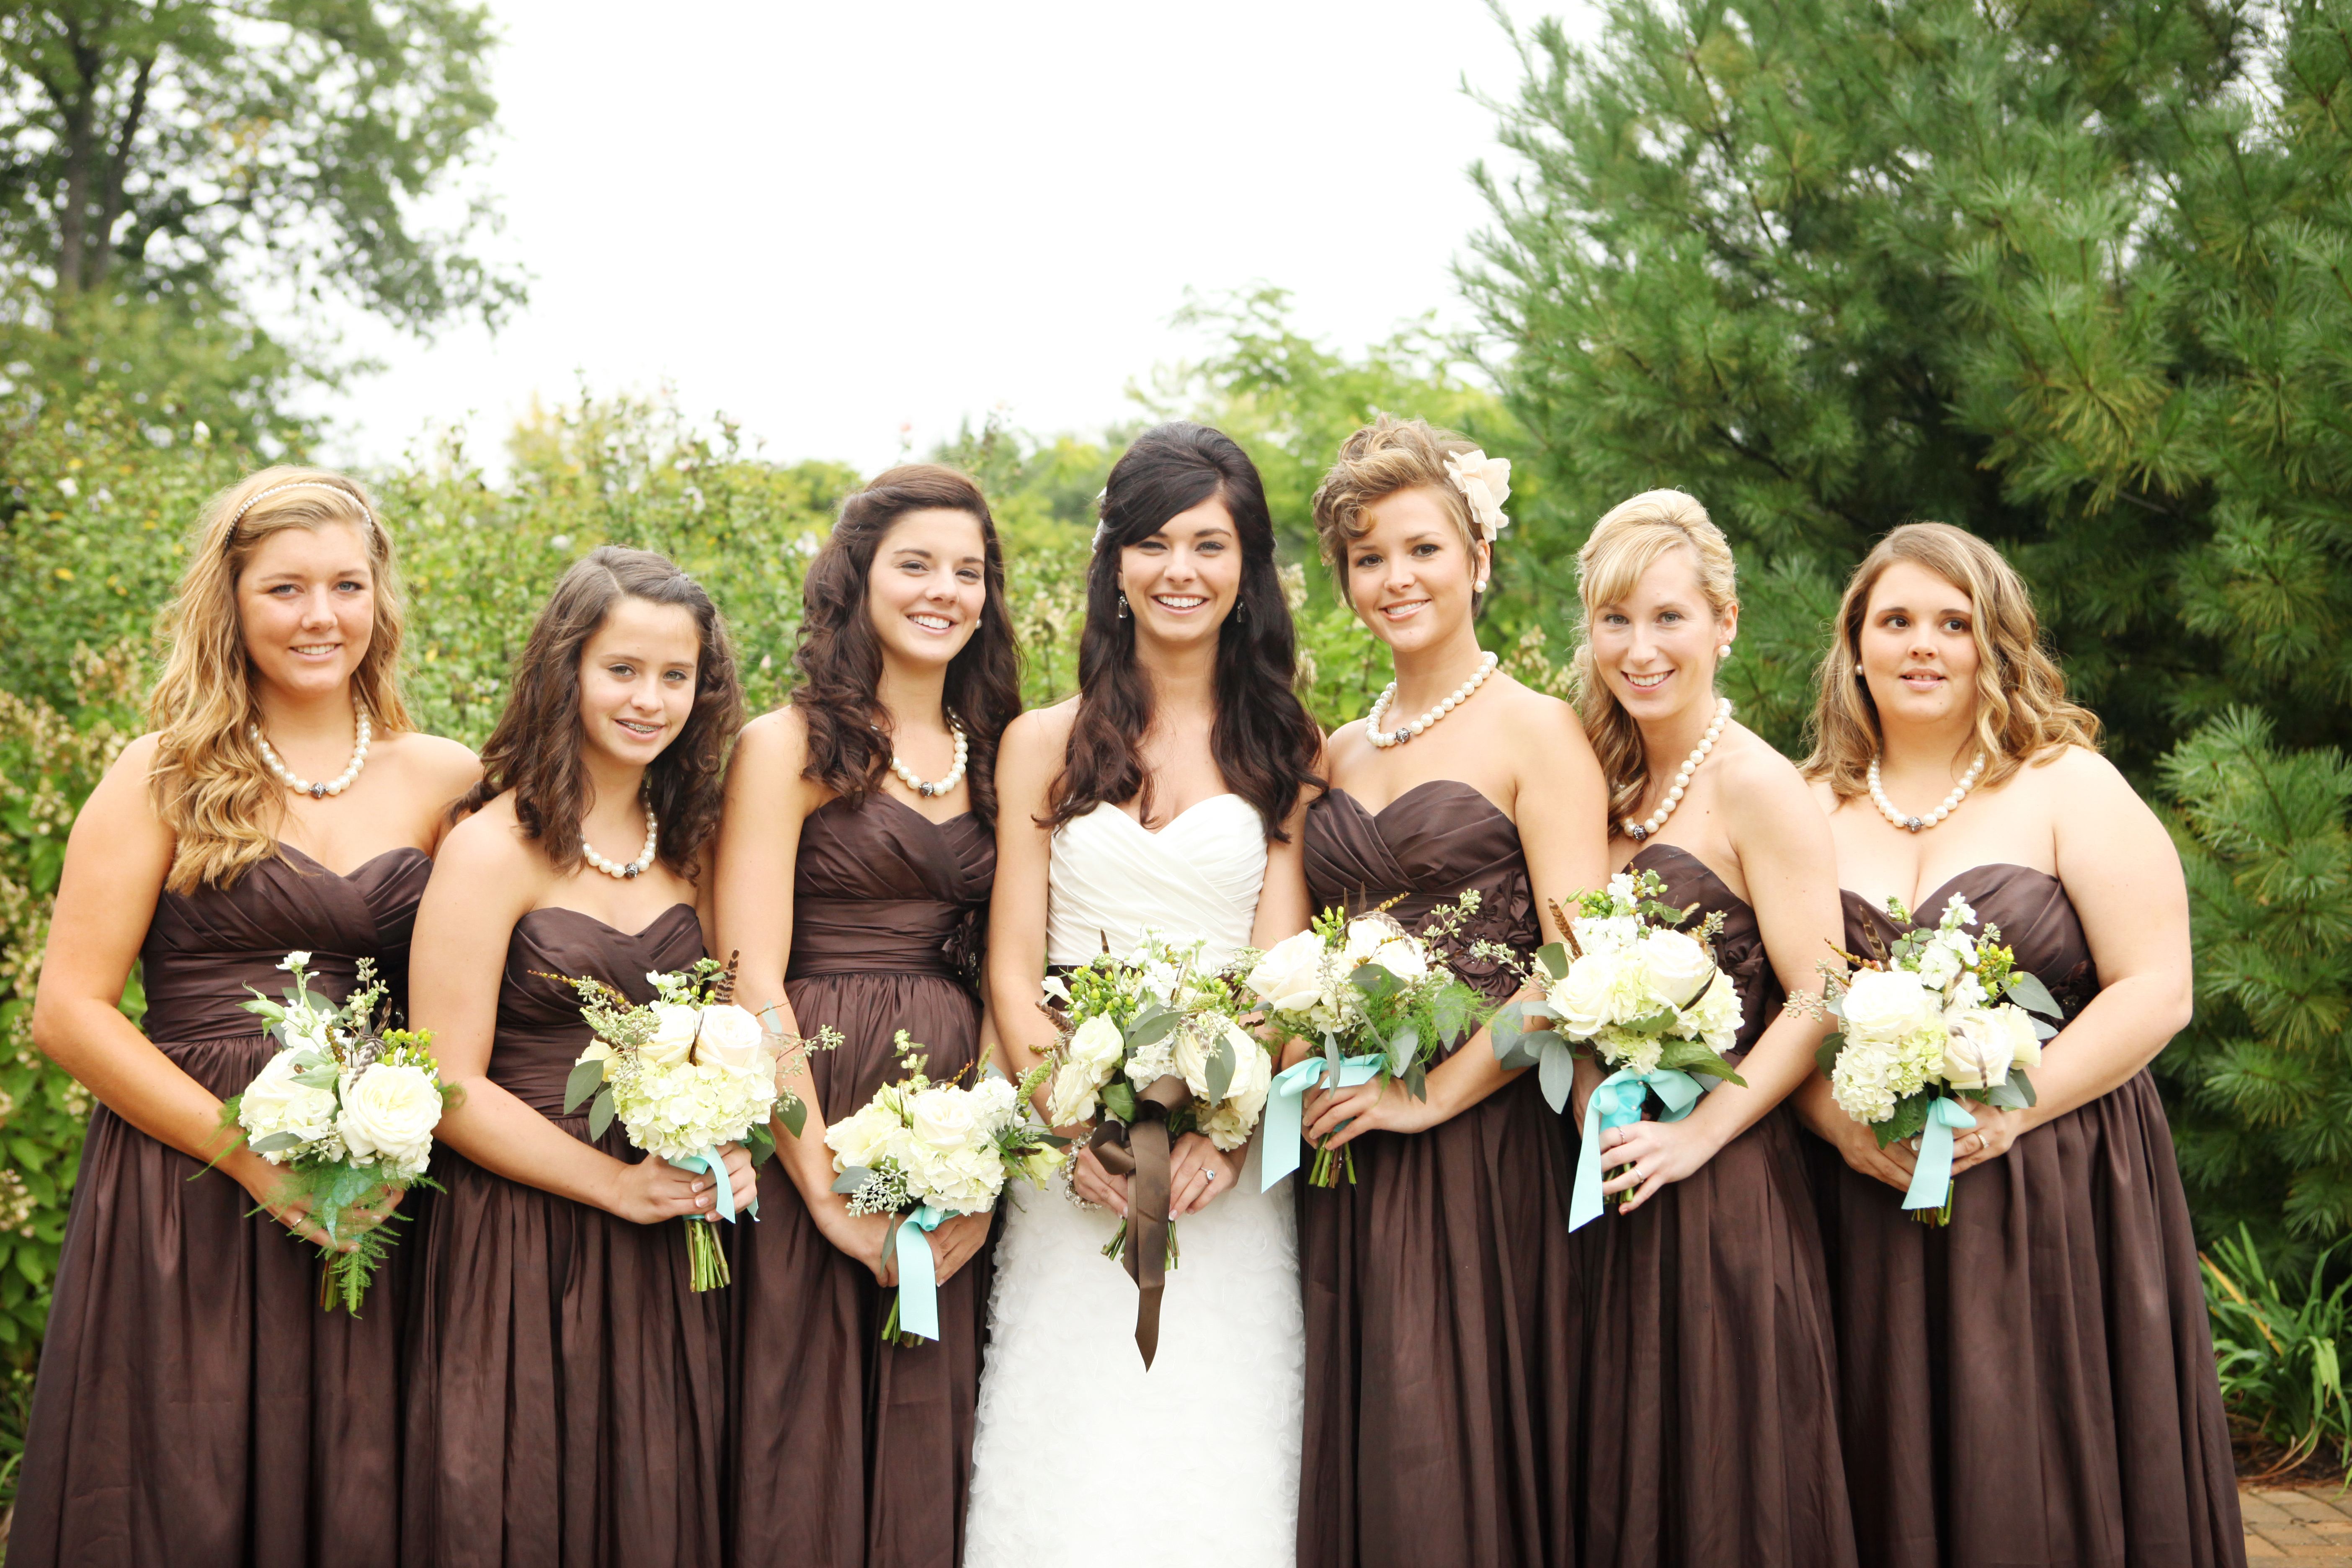 Bridesmaids, Bridesmaids Dresses, Fashion, brown, Fall, Rustic, Courtney sawyer, rustic wedding dresses, Fall Wedding Dresses